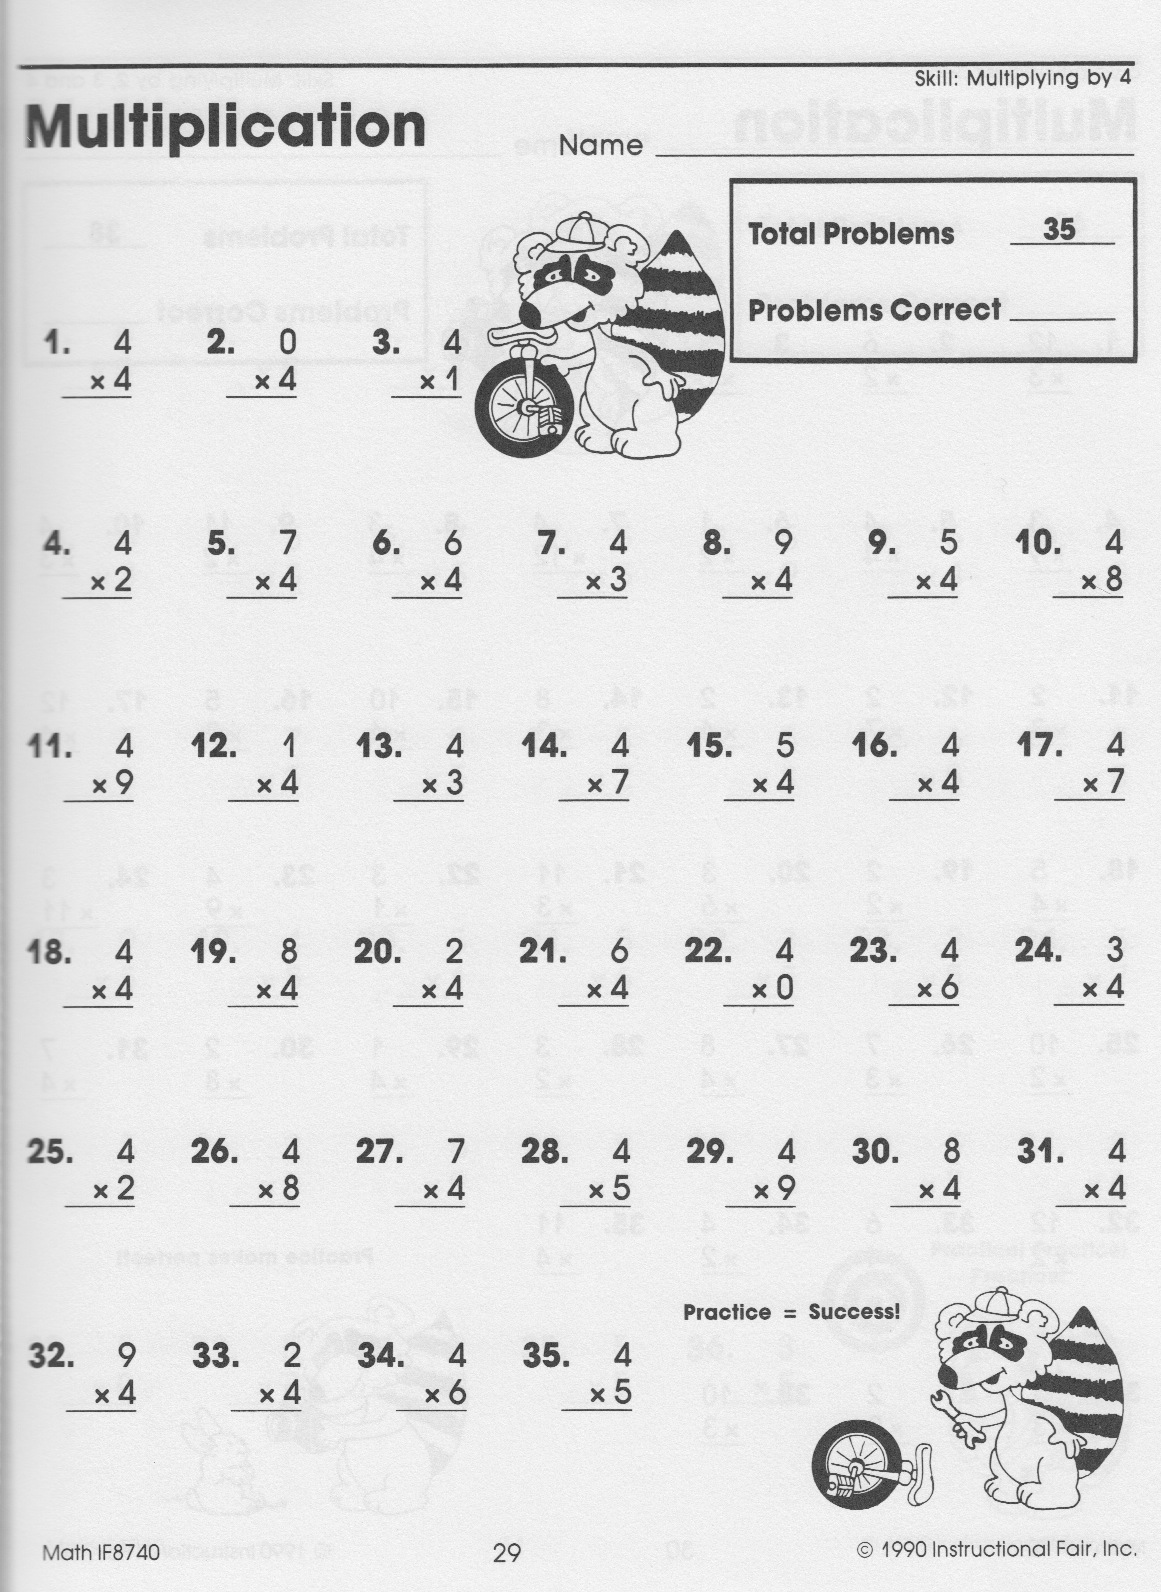 Worksheet Estimating Worksheets 4th Grade worksheet 612792 multiplication estimation worksheets ballpark estimate vintagegrn 2nd grade